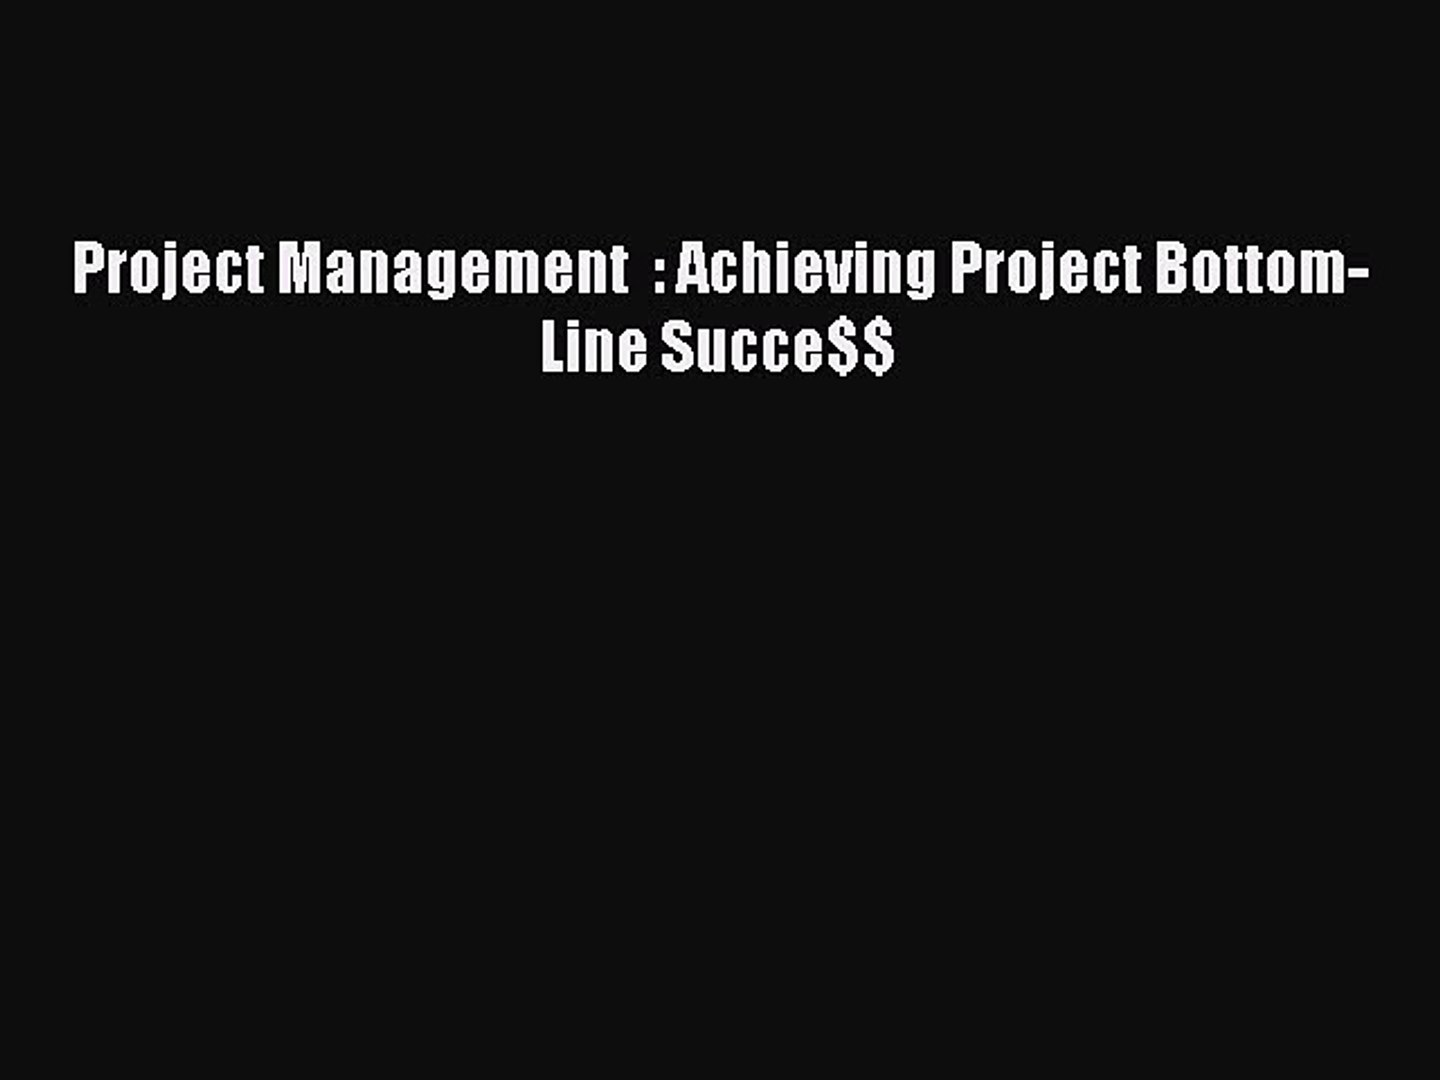 READbook Project Management  : Achieving Project Bottom-Line Succe$$ READ  ONLINE